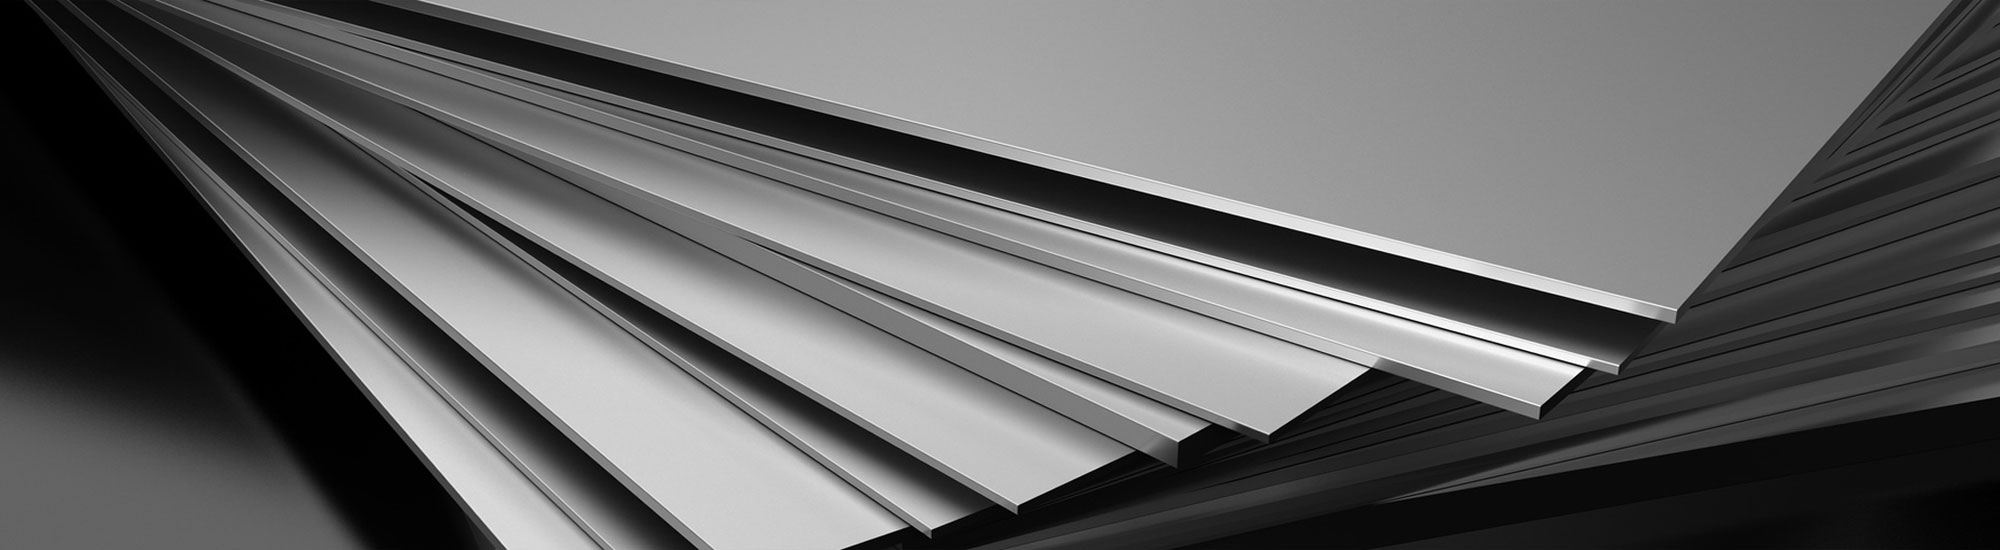 A286 Stainless Steel suppliers